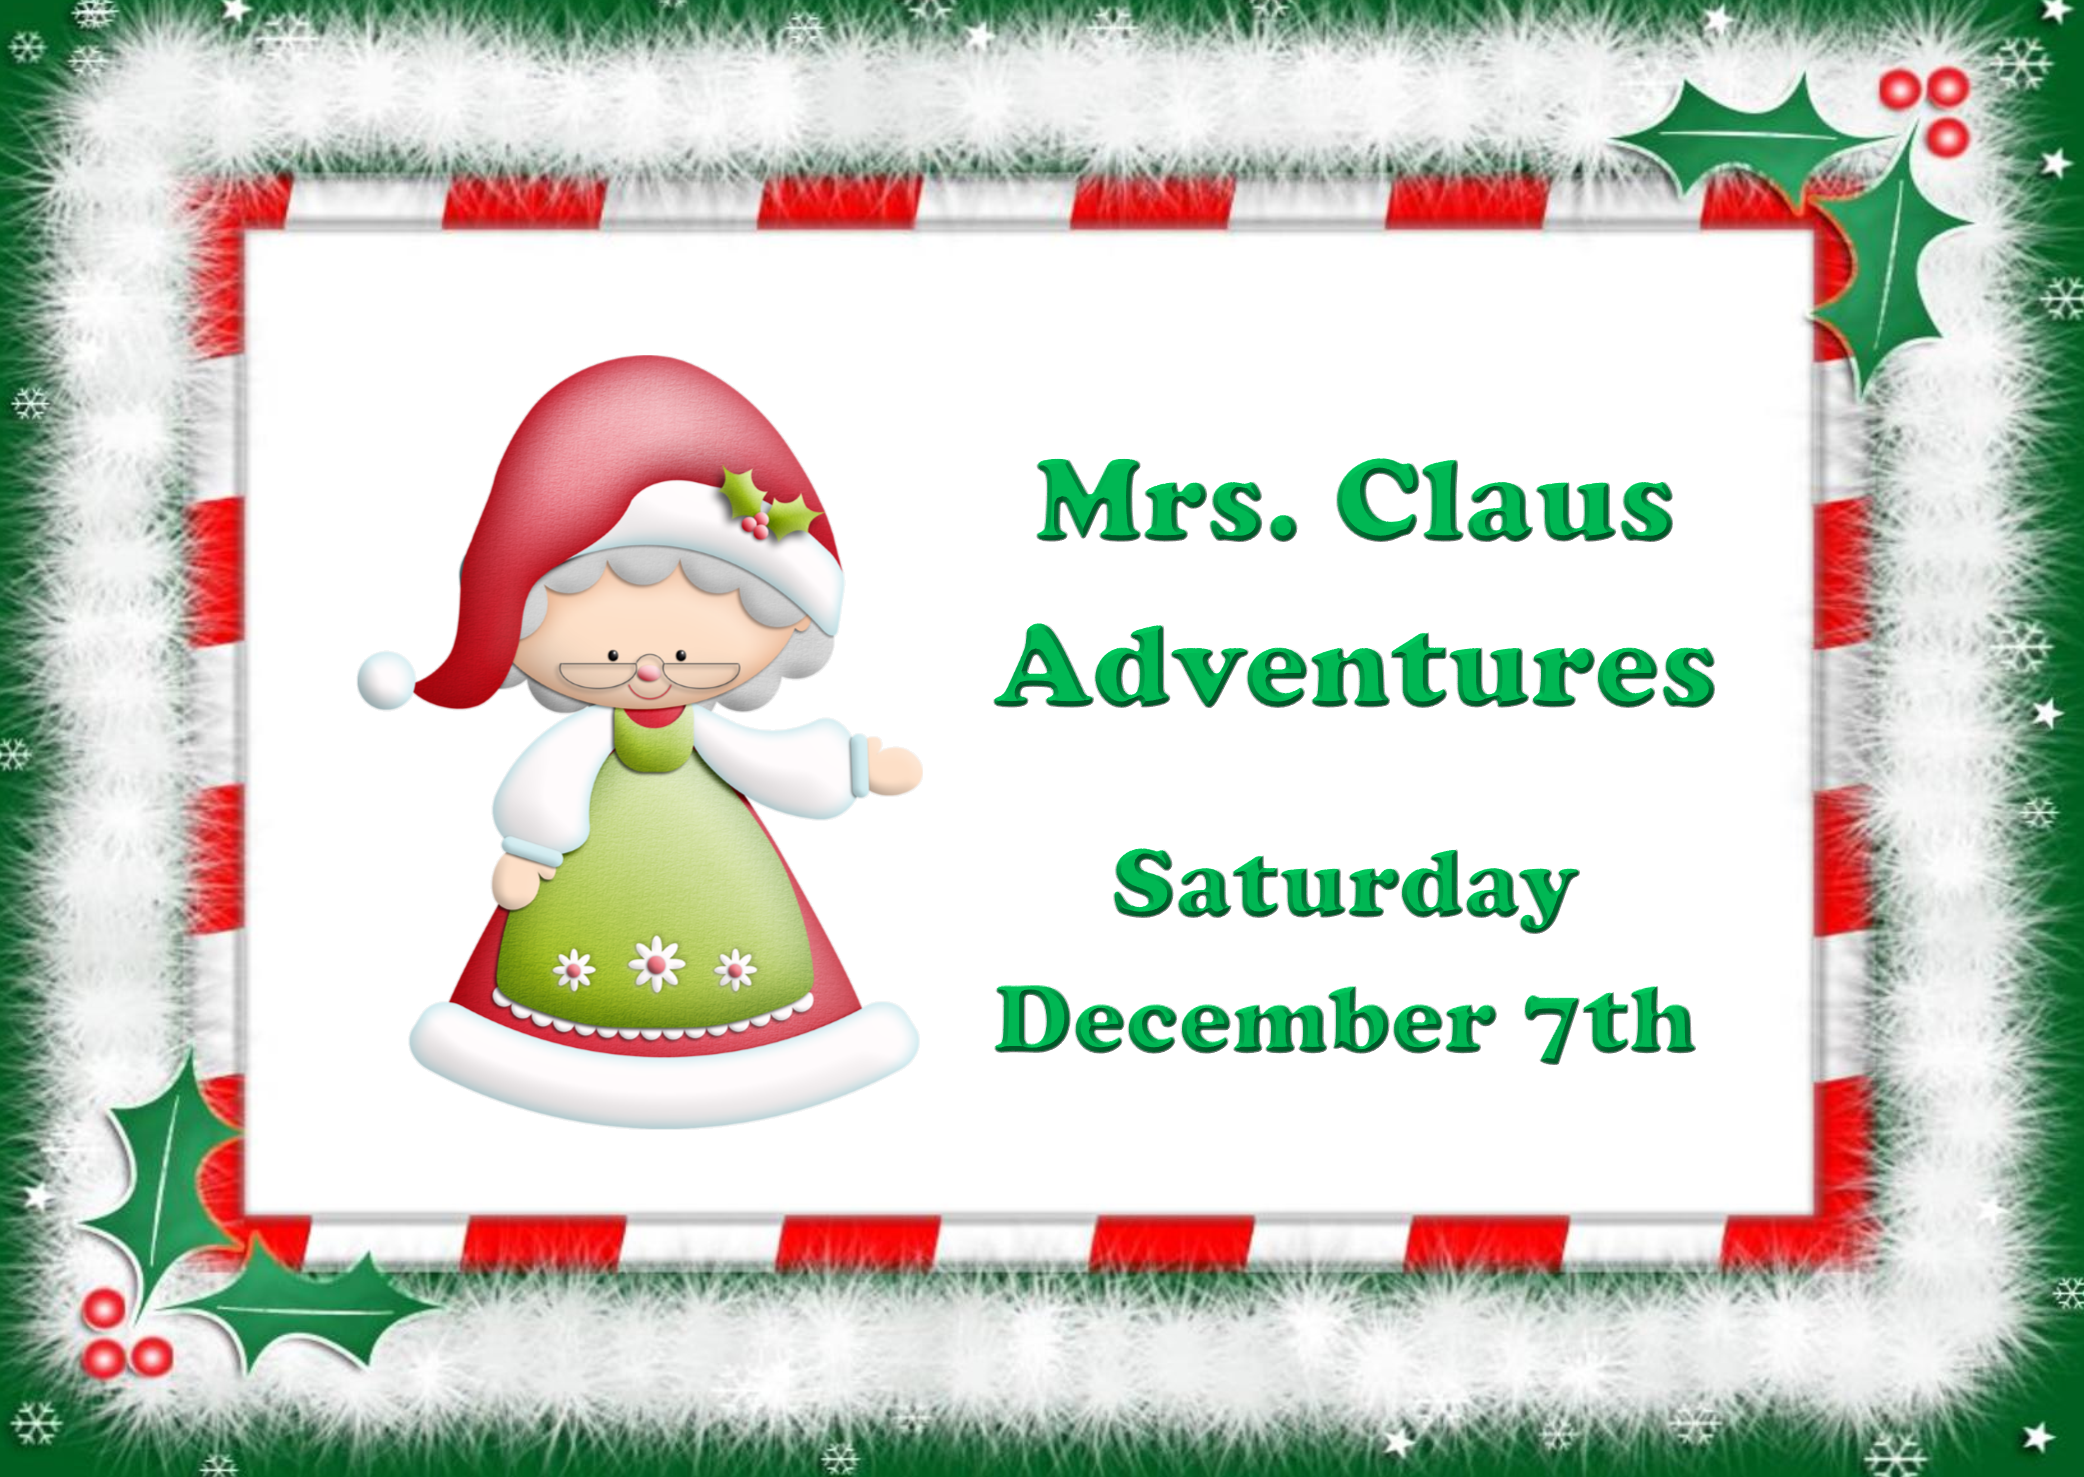 Mrs. Claus Adventures 2019